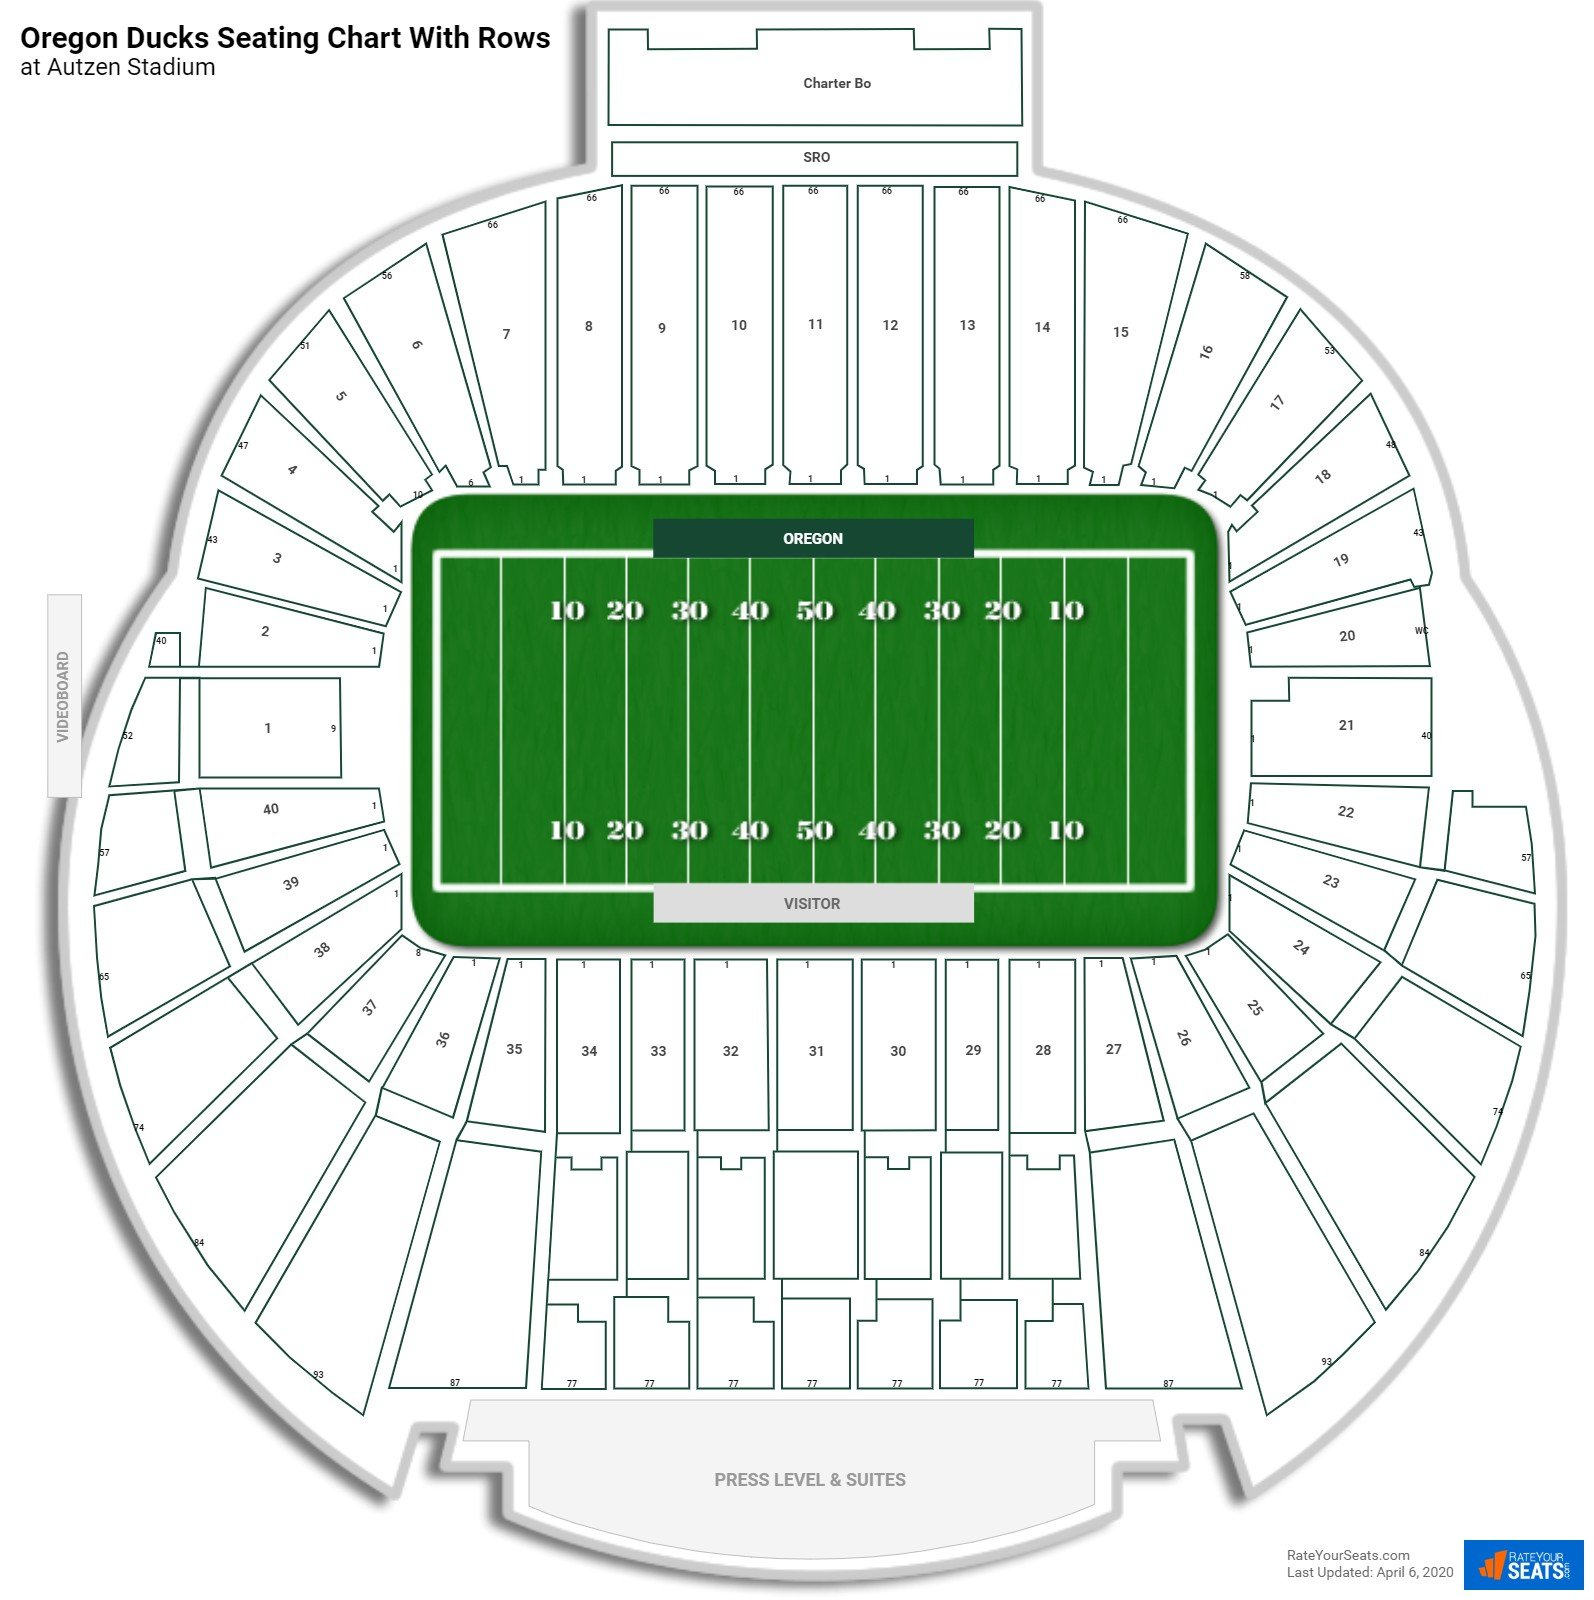 Autzen Stadium seating chart with rows